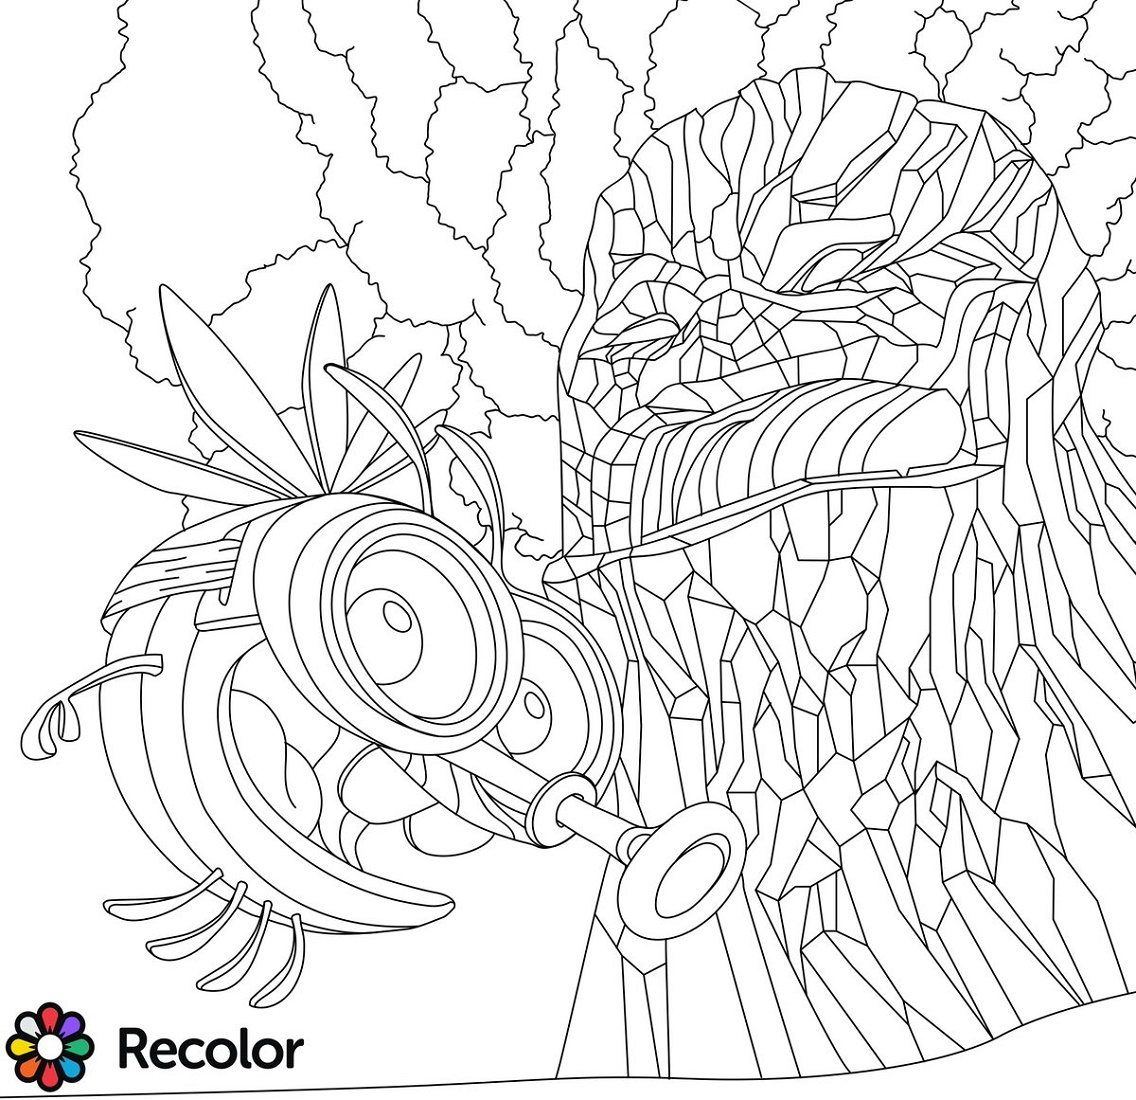 Recolor Coloring Book Free